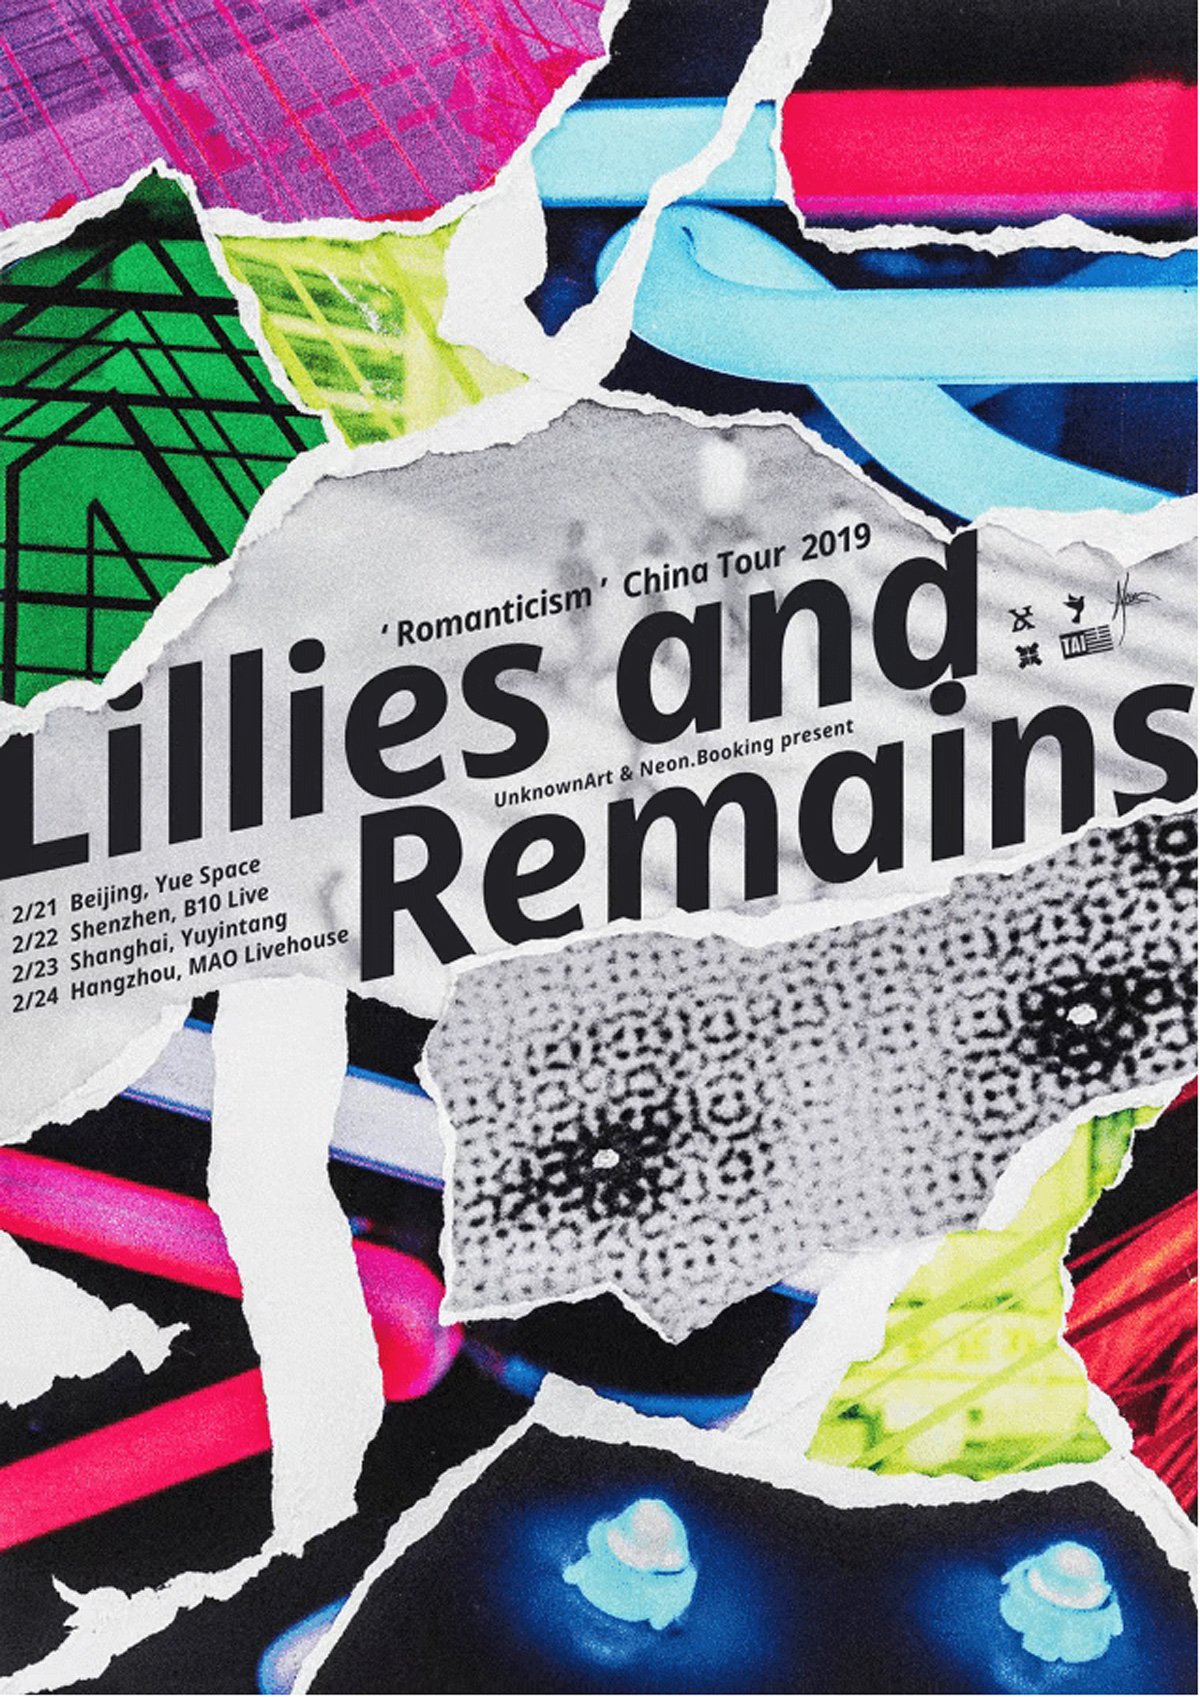 Lillies and Remains